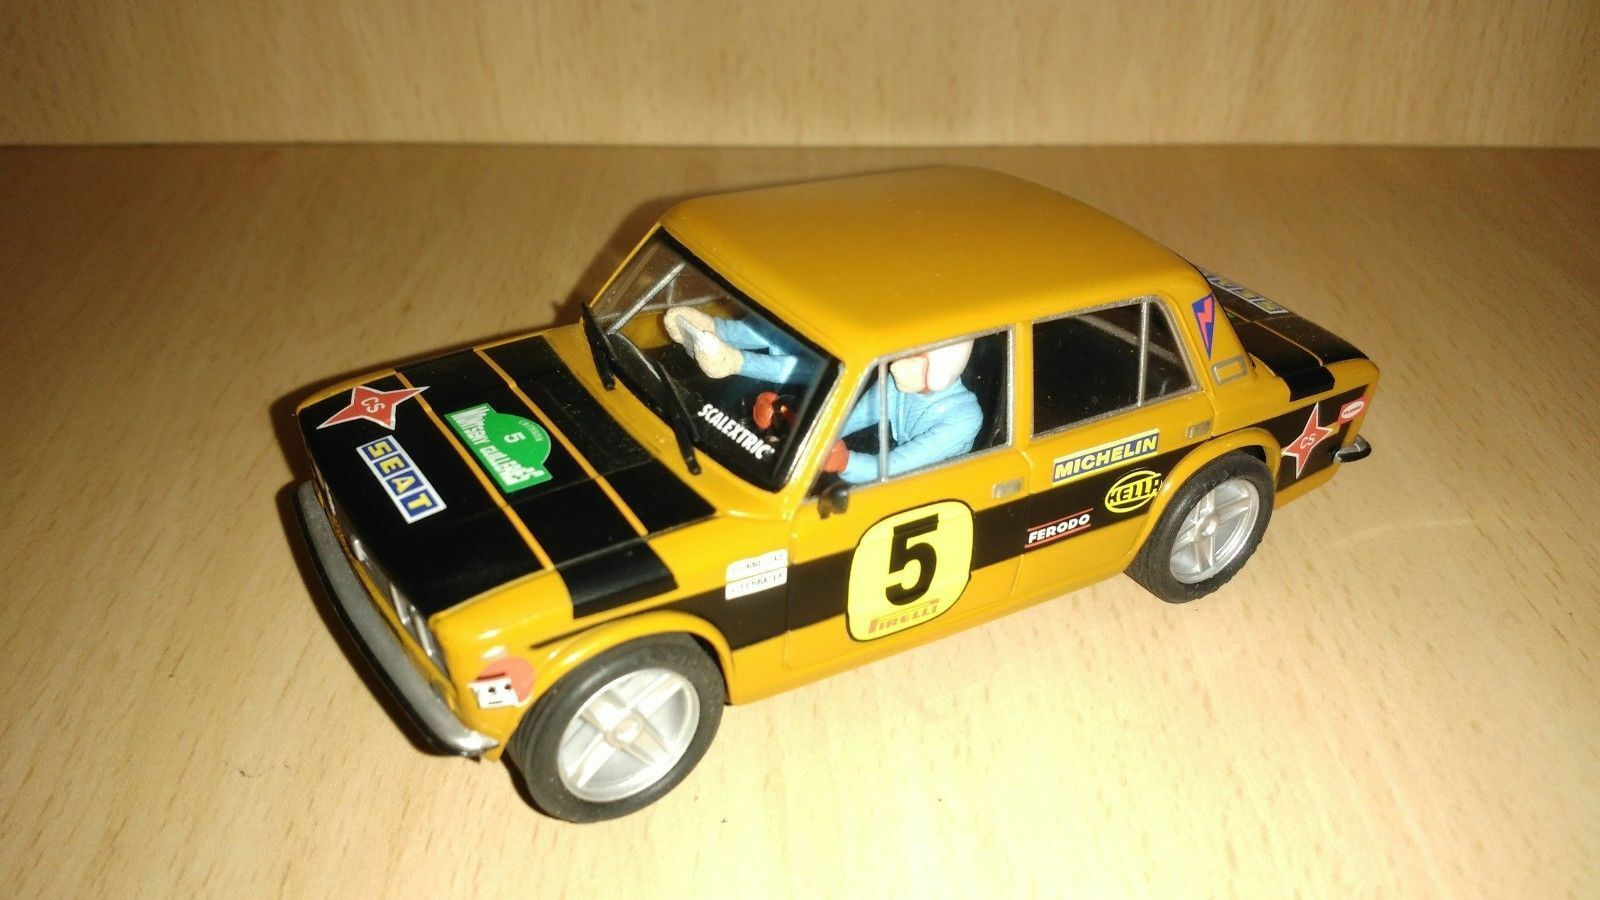 Scalextric seat 1430 altaya Rallys miticos collection